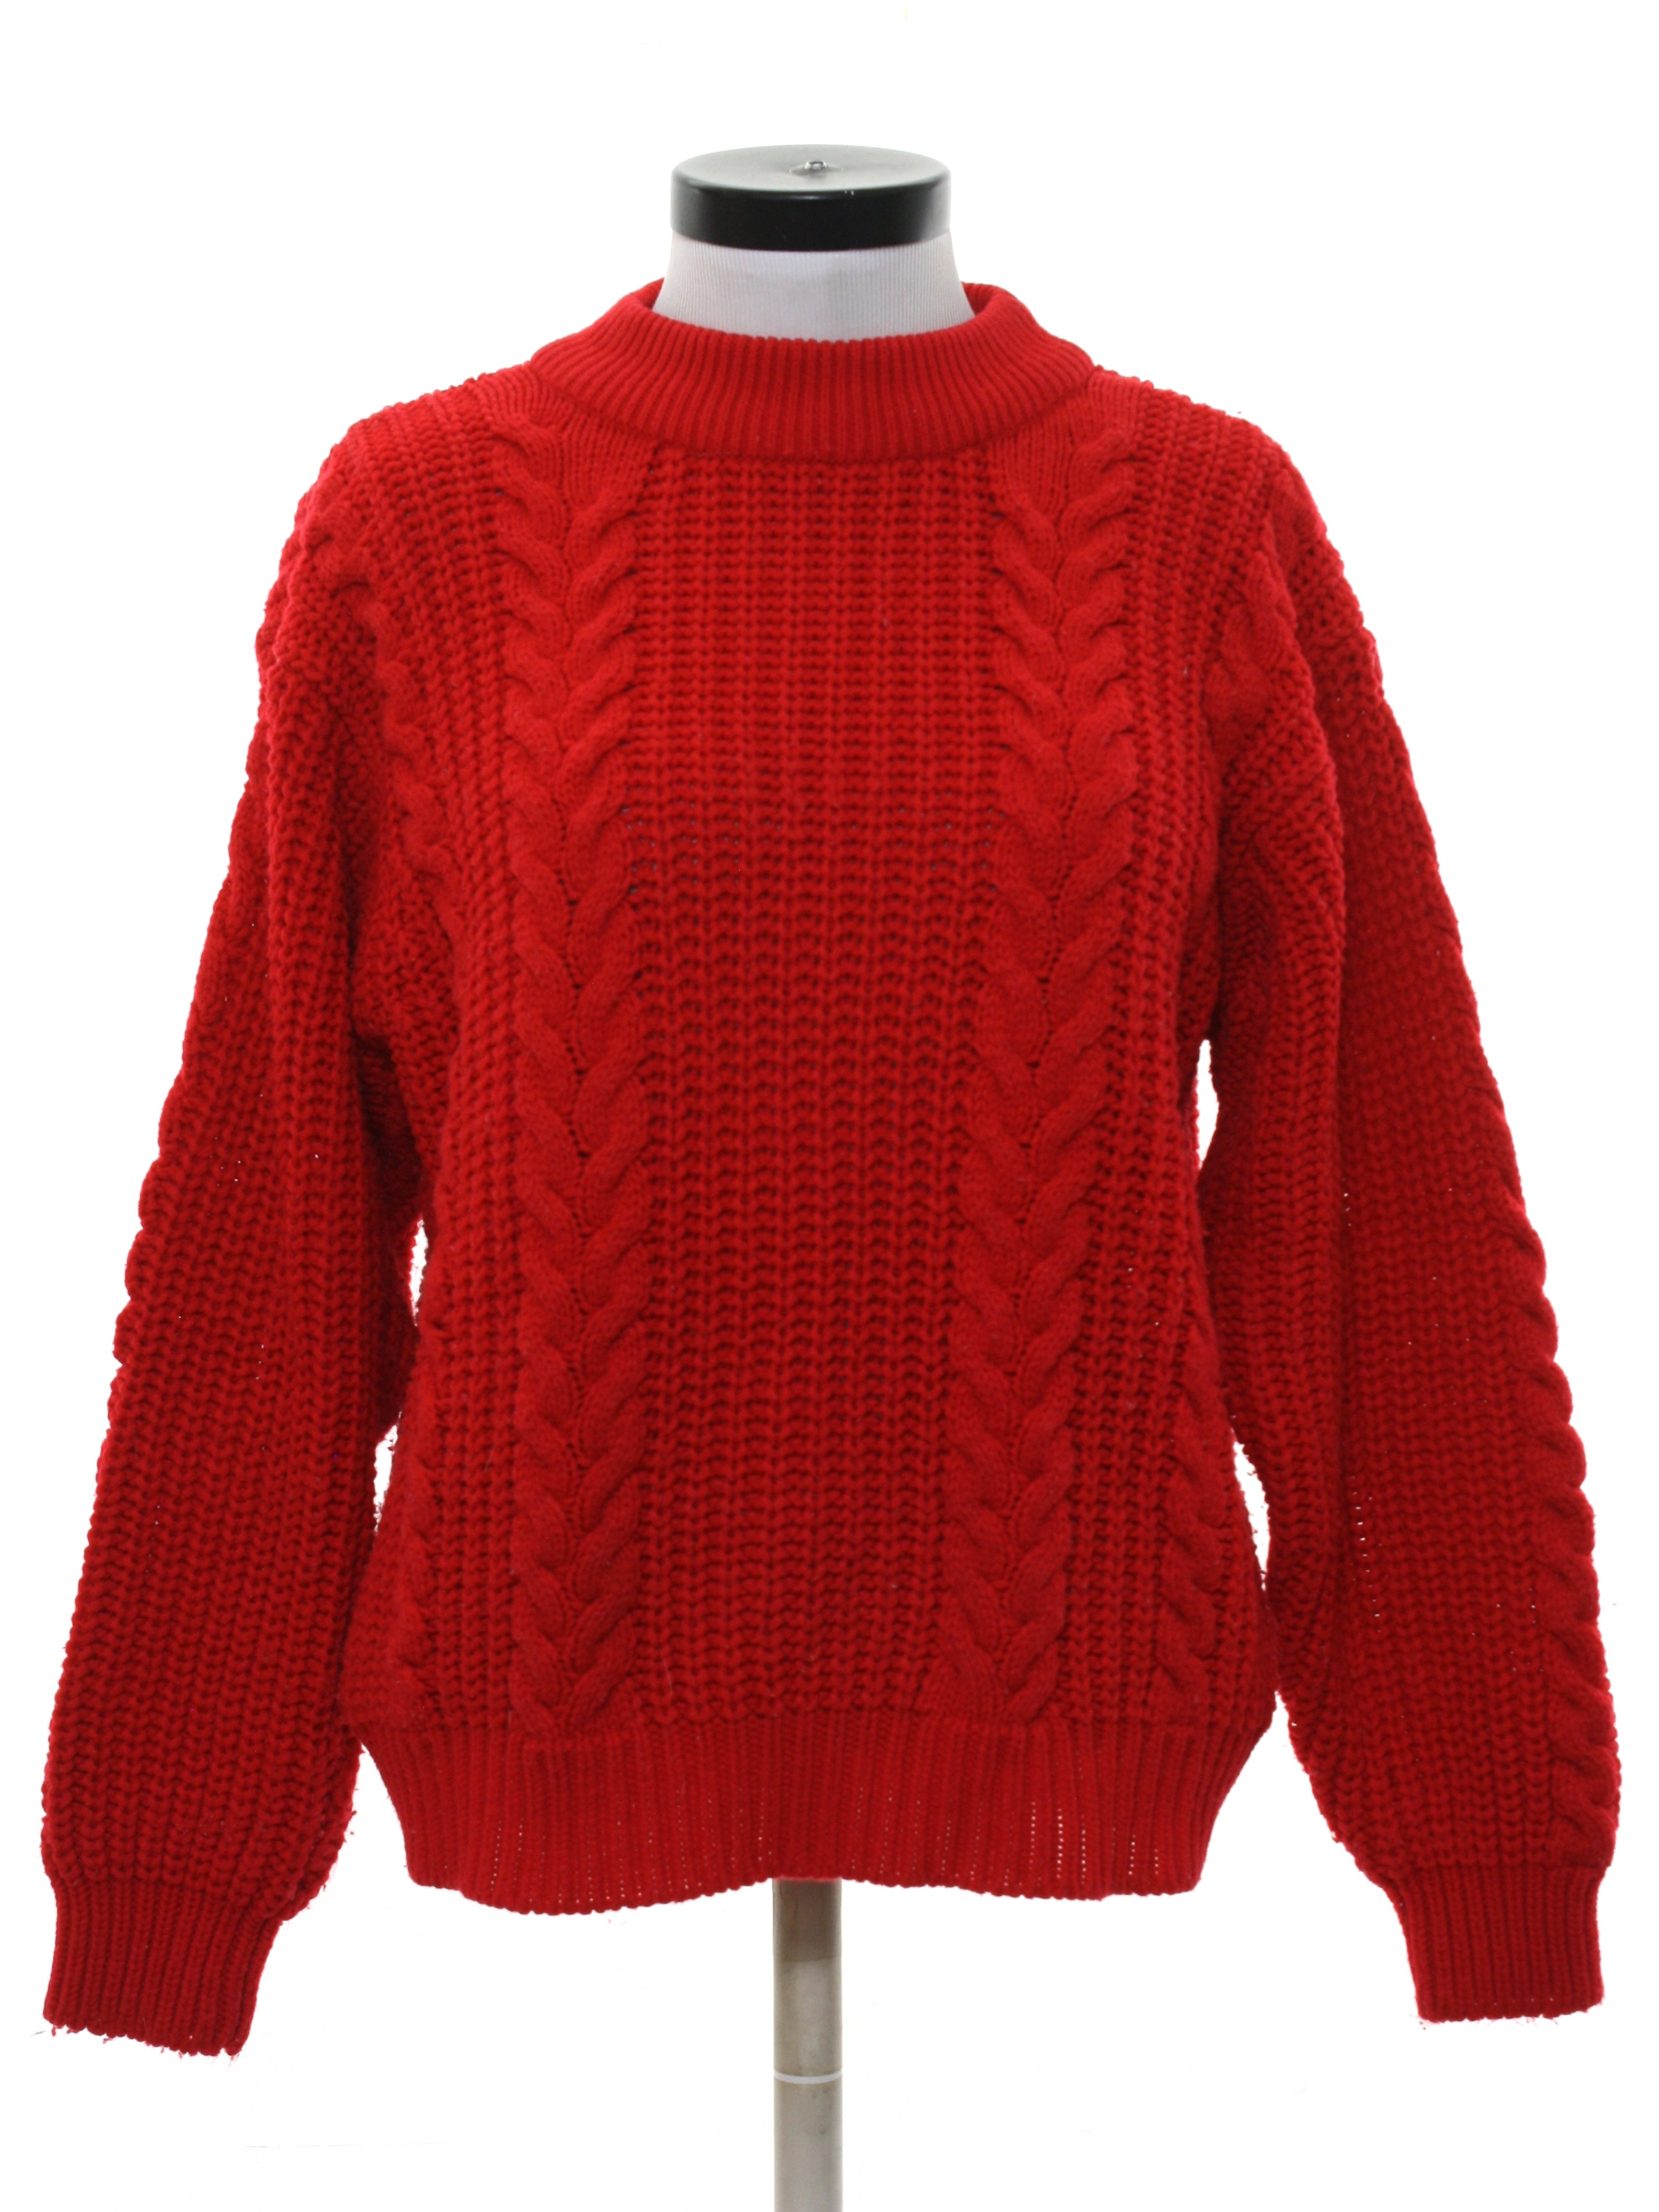 Vintage 80s Sweater 80s Junior Connection Womens Red Chunky Knit